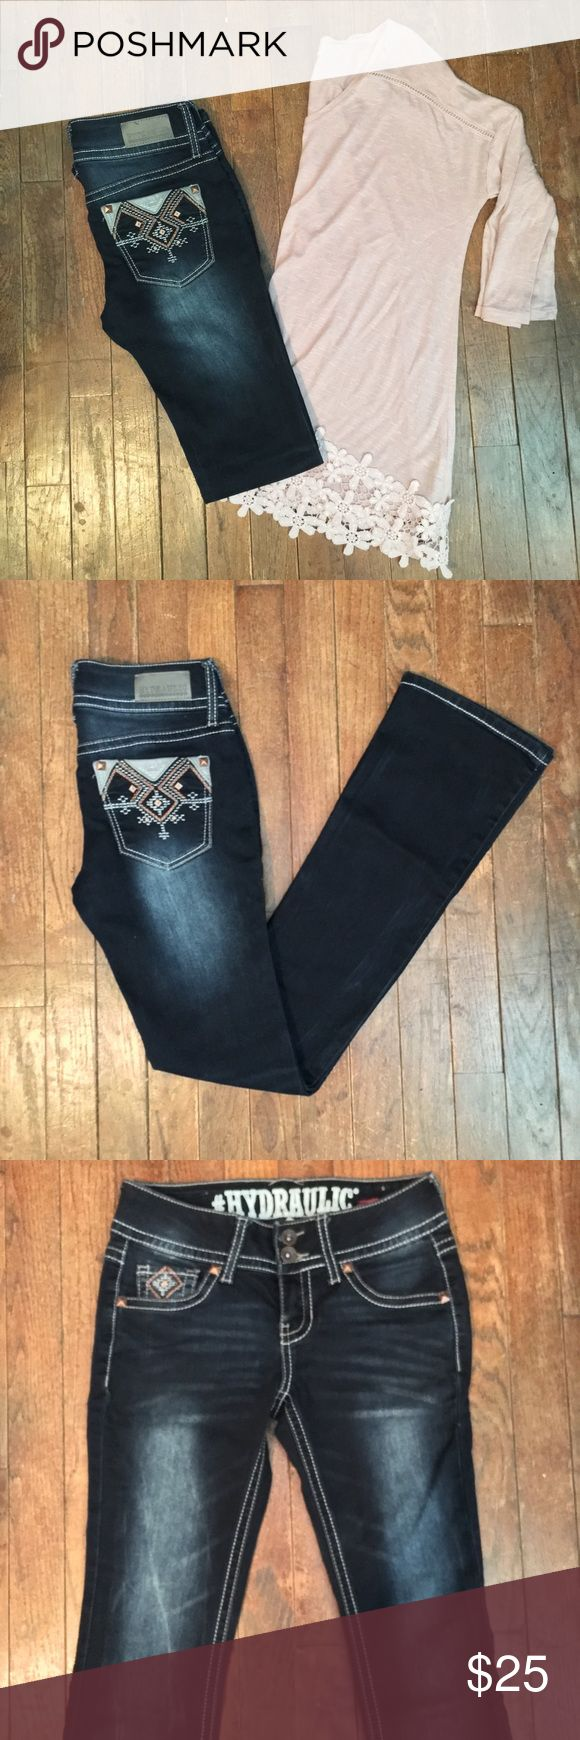 """NWOT Hydraulic Jeans Dark wash with factory fading on front and back. Boot cut with Aztec pattern on pockets. Double button front closure. Inseam is 31"""". Size 3/4 Juniors. NWOT Hydraulic Jeans Boot Cut"""